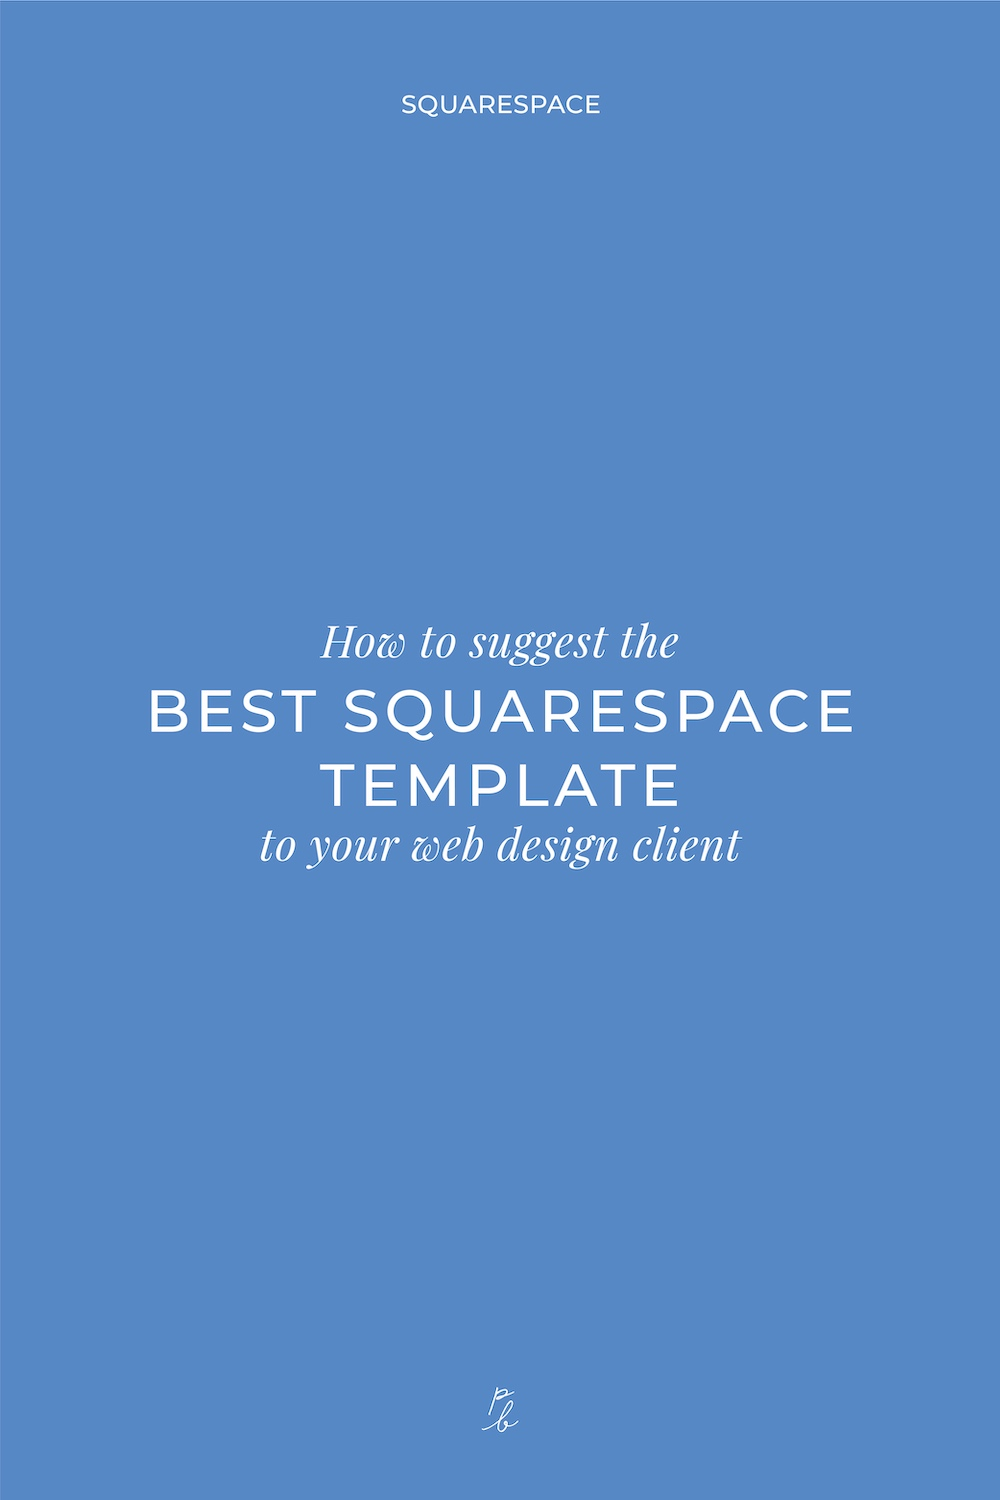 3-How to suggest the best squarespace template to your web design client.jpg